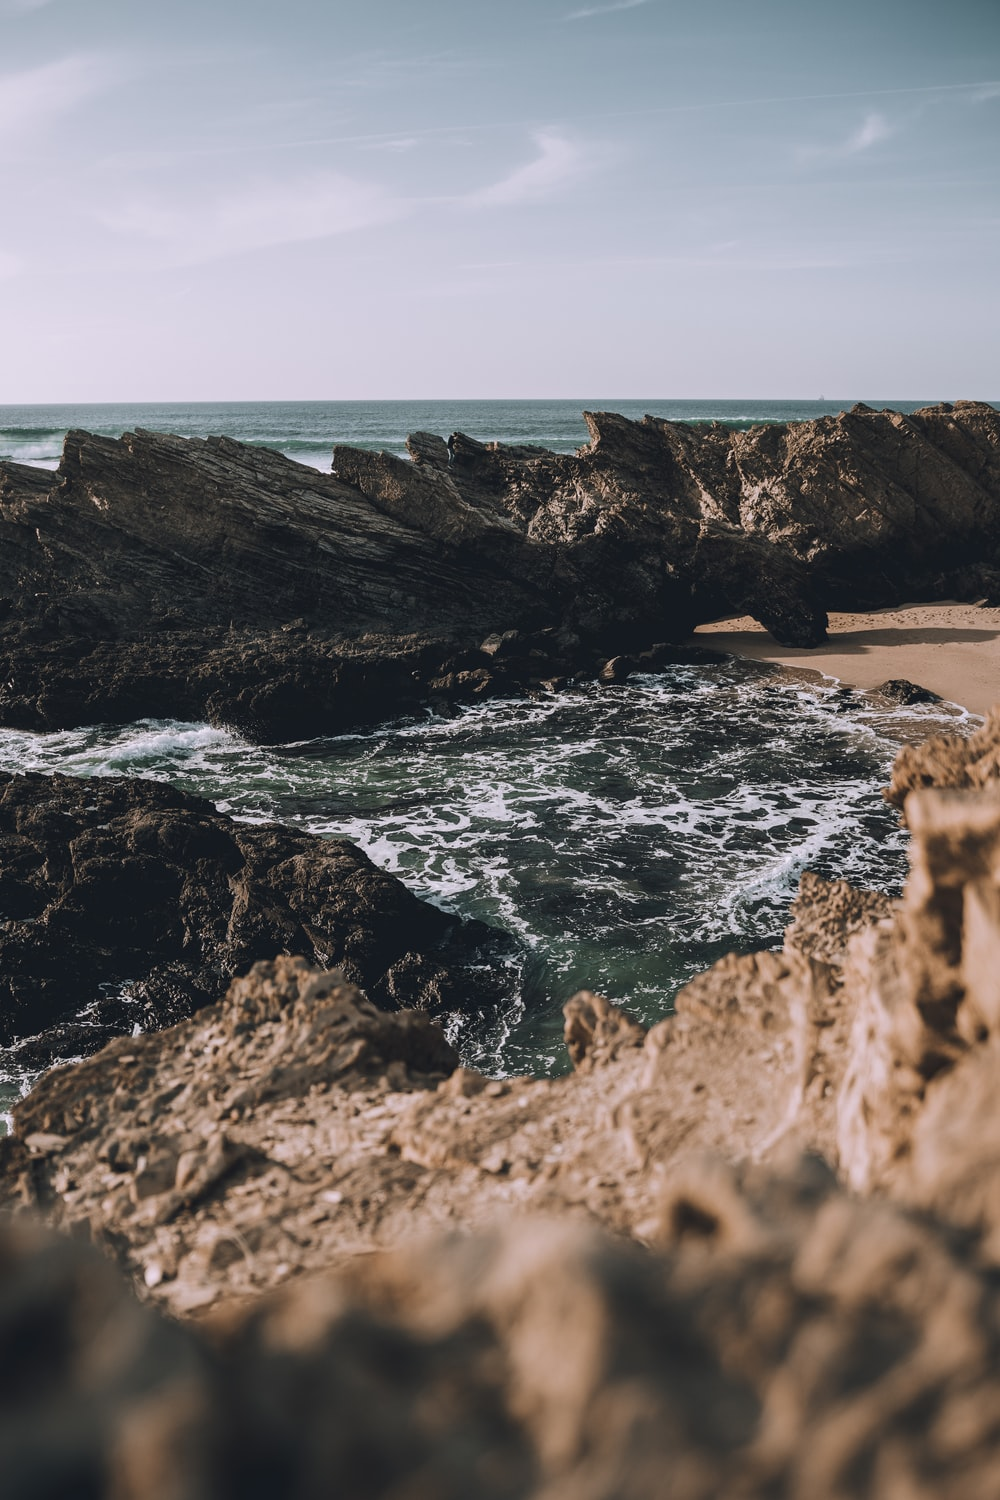 photography of rock formation beside seashore during daytime